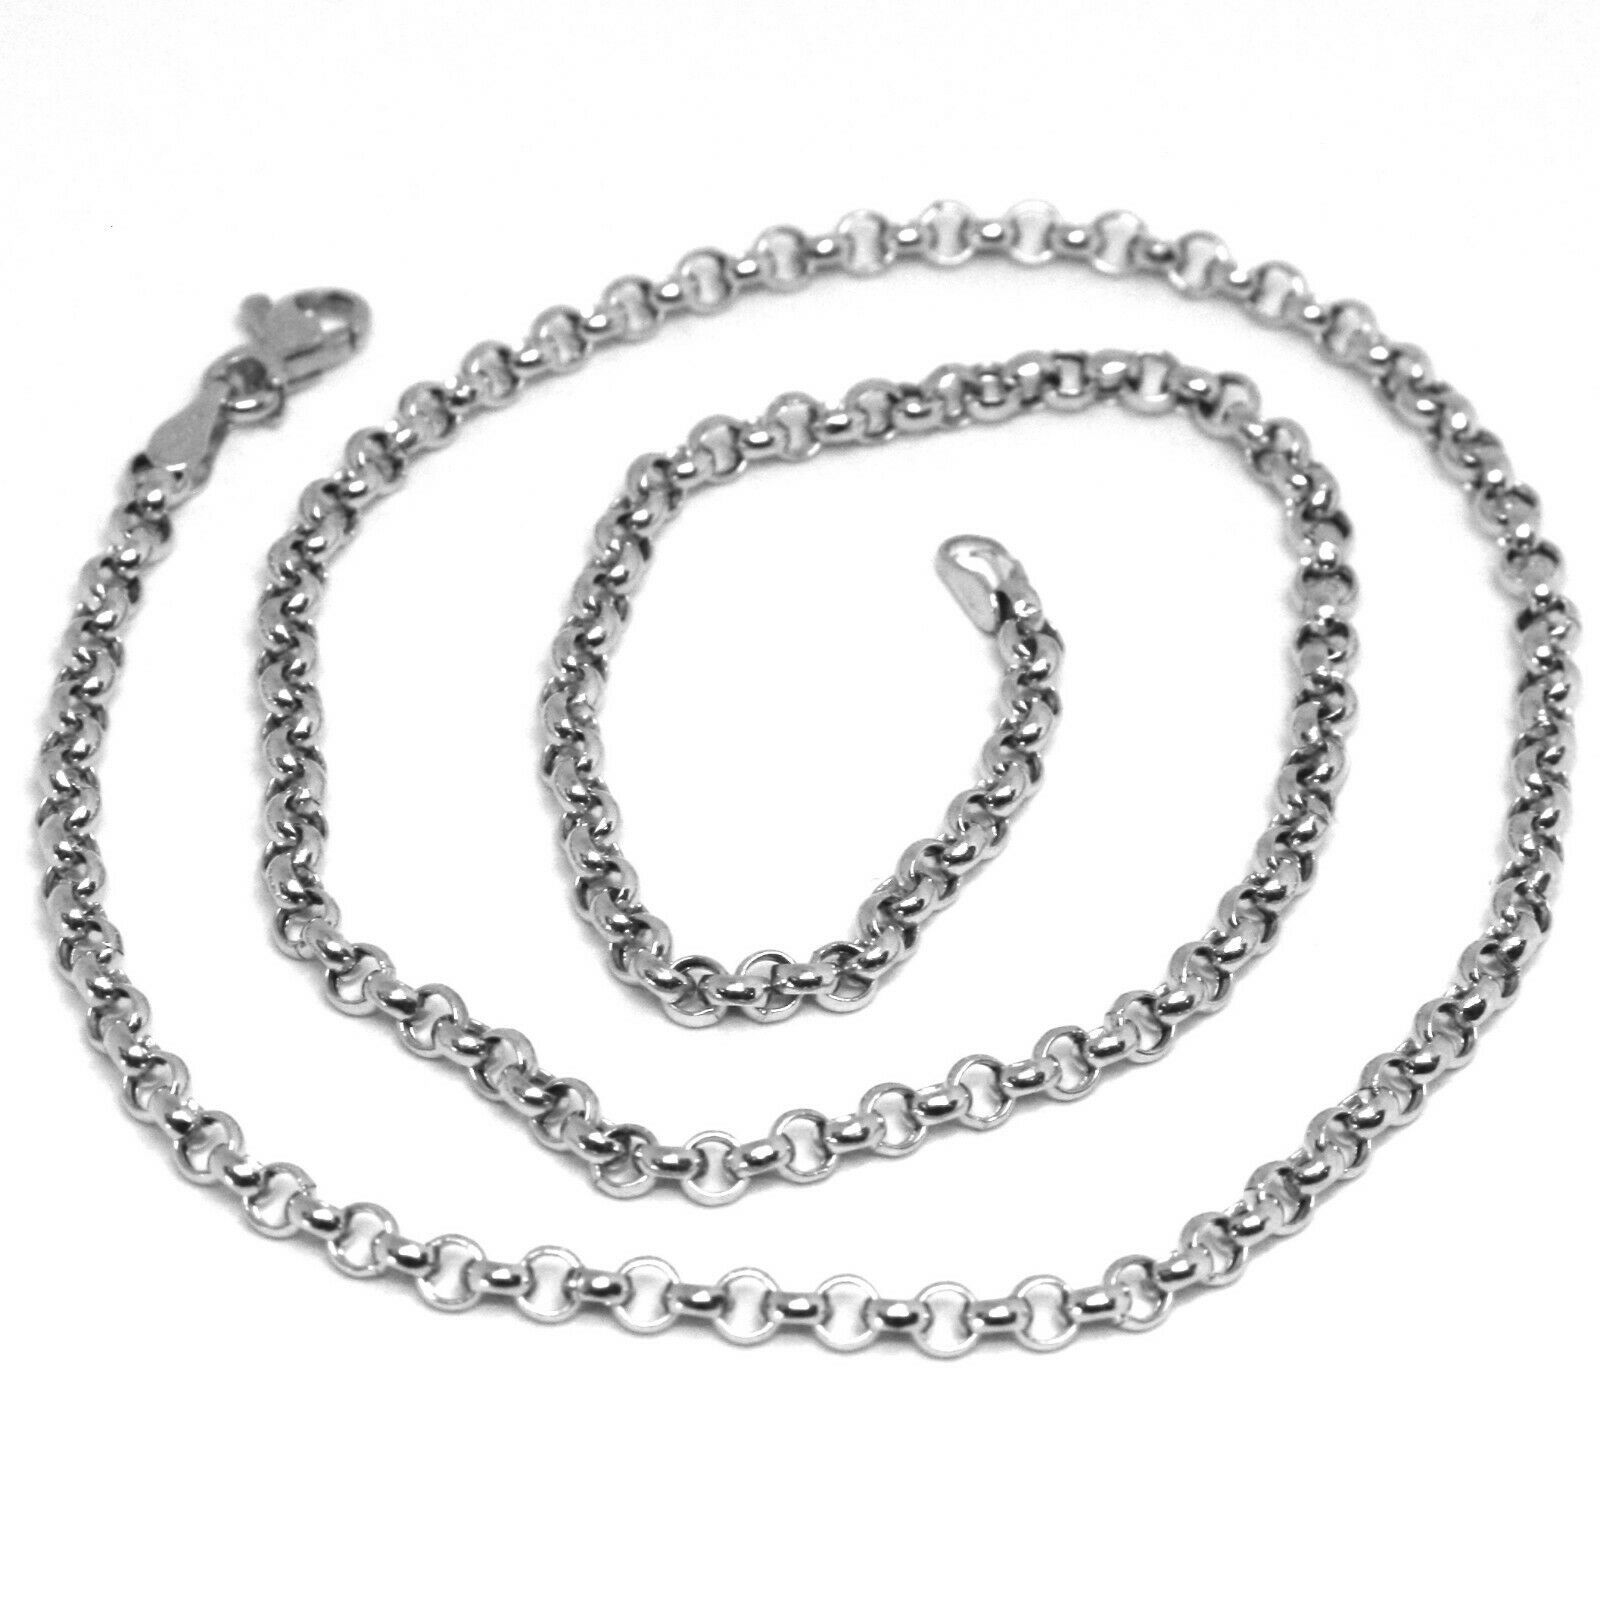 18K WHITE GOLD ROLO CHAIN 2.5 MM, 18 INCHES, NECKLACE, CIRCLES, MADE IN ITALY